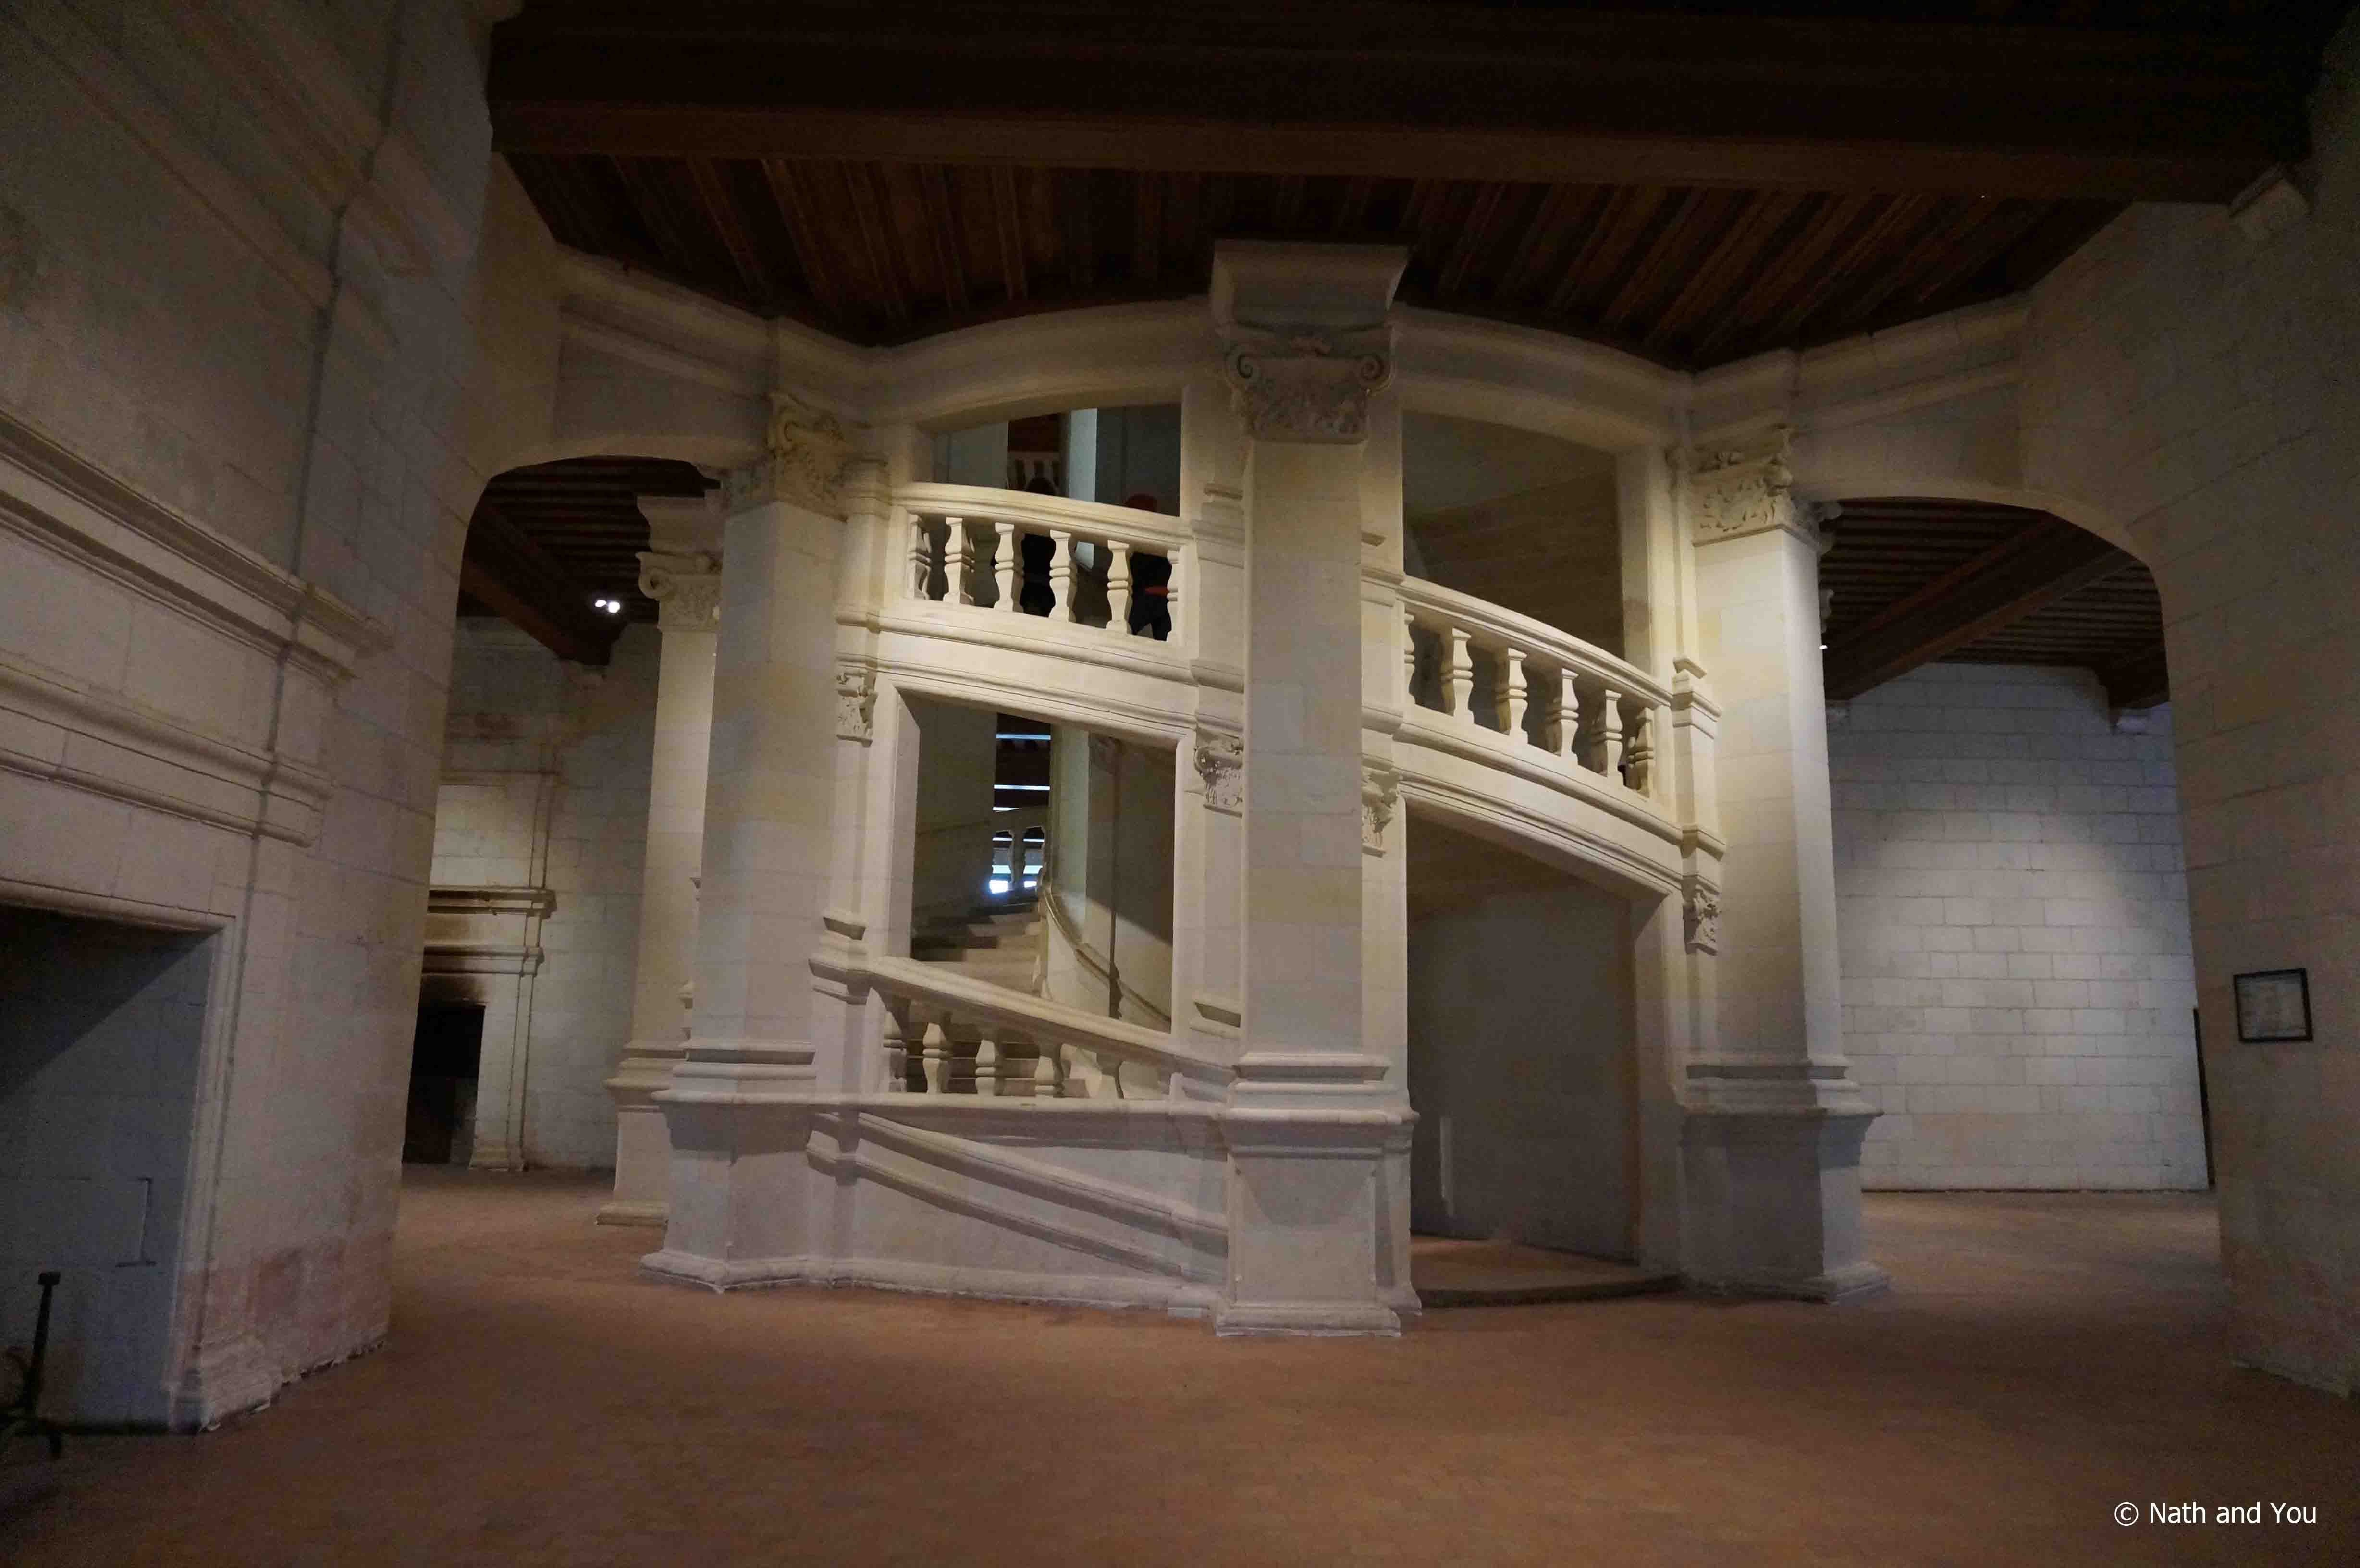 Chambord-4-Chateaux-Loire-Nath-and-You